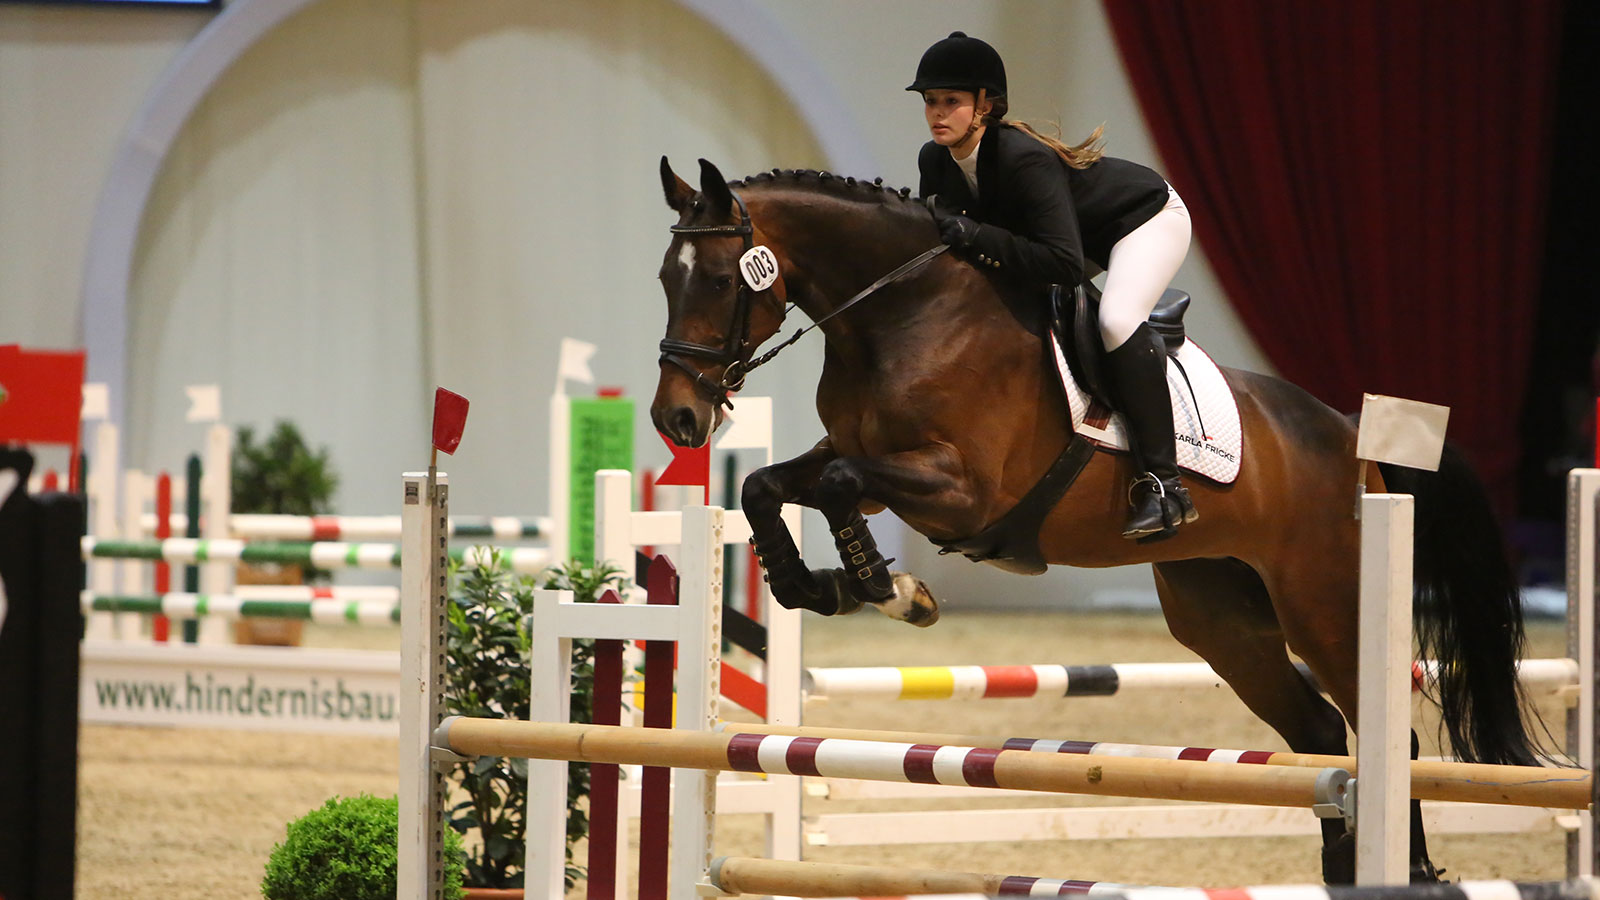 Show jumping at the HansePferd trade fair in the exhibition halls of Hamburg